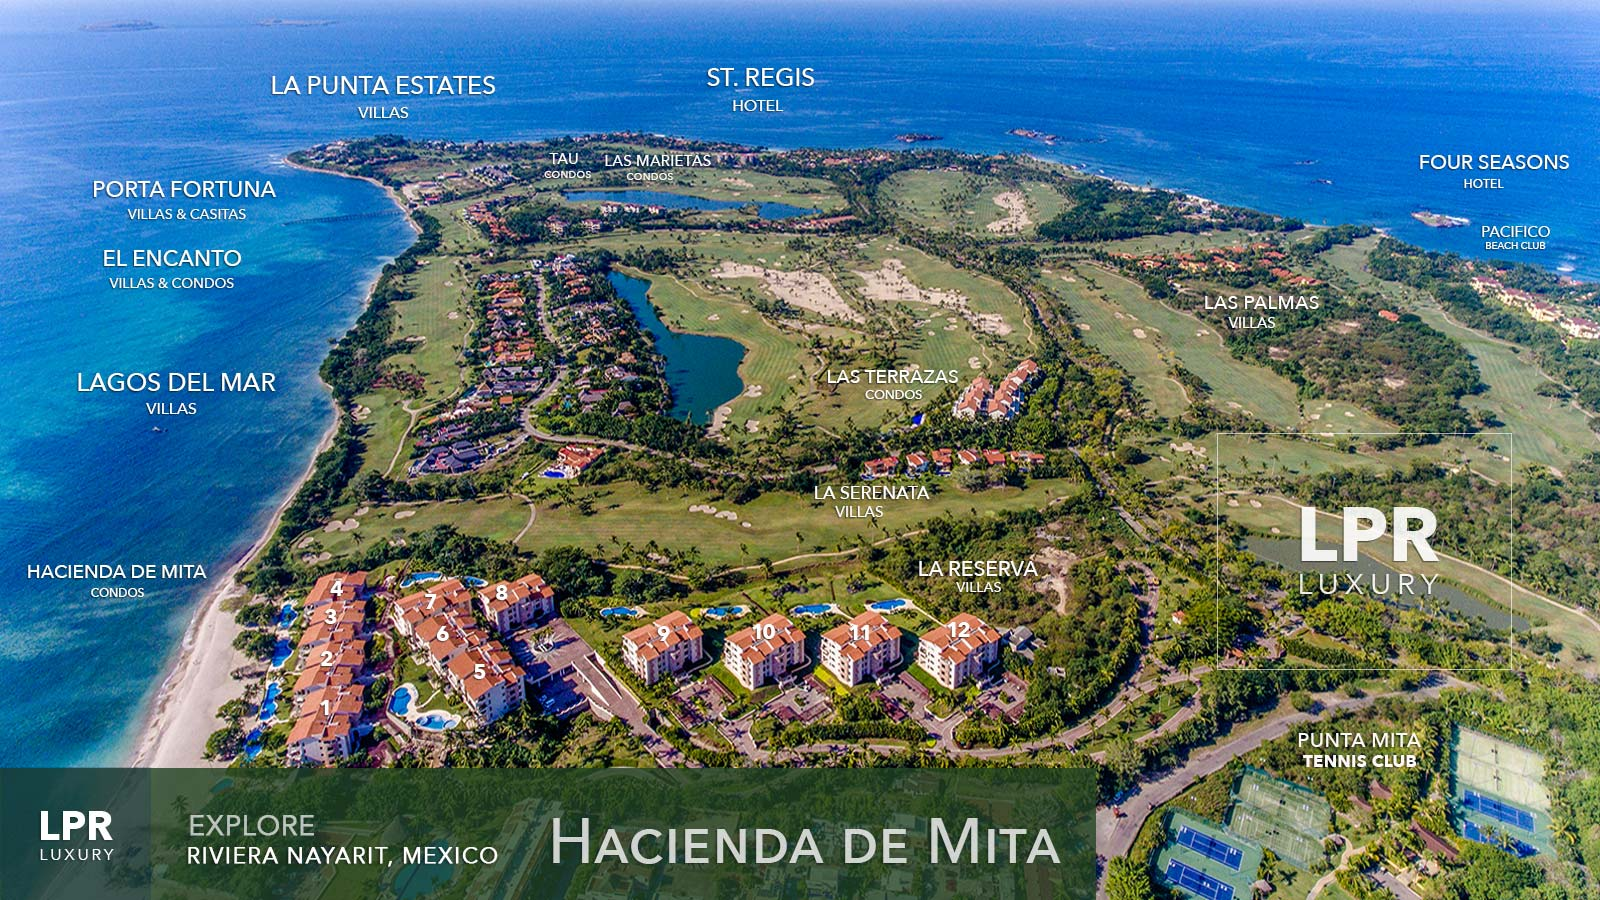 Hacienda de Mita - Luxury Beachfront Punta Mita Resort Condominiums - Four Seasons / St. Regis Punta Mita Resort